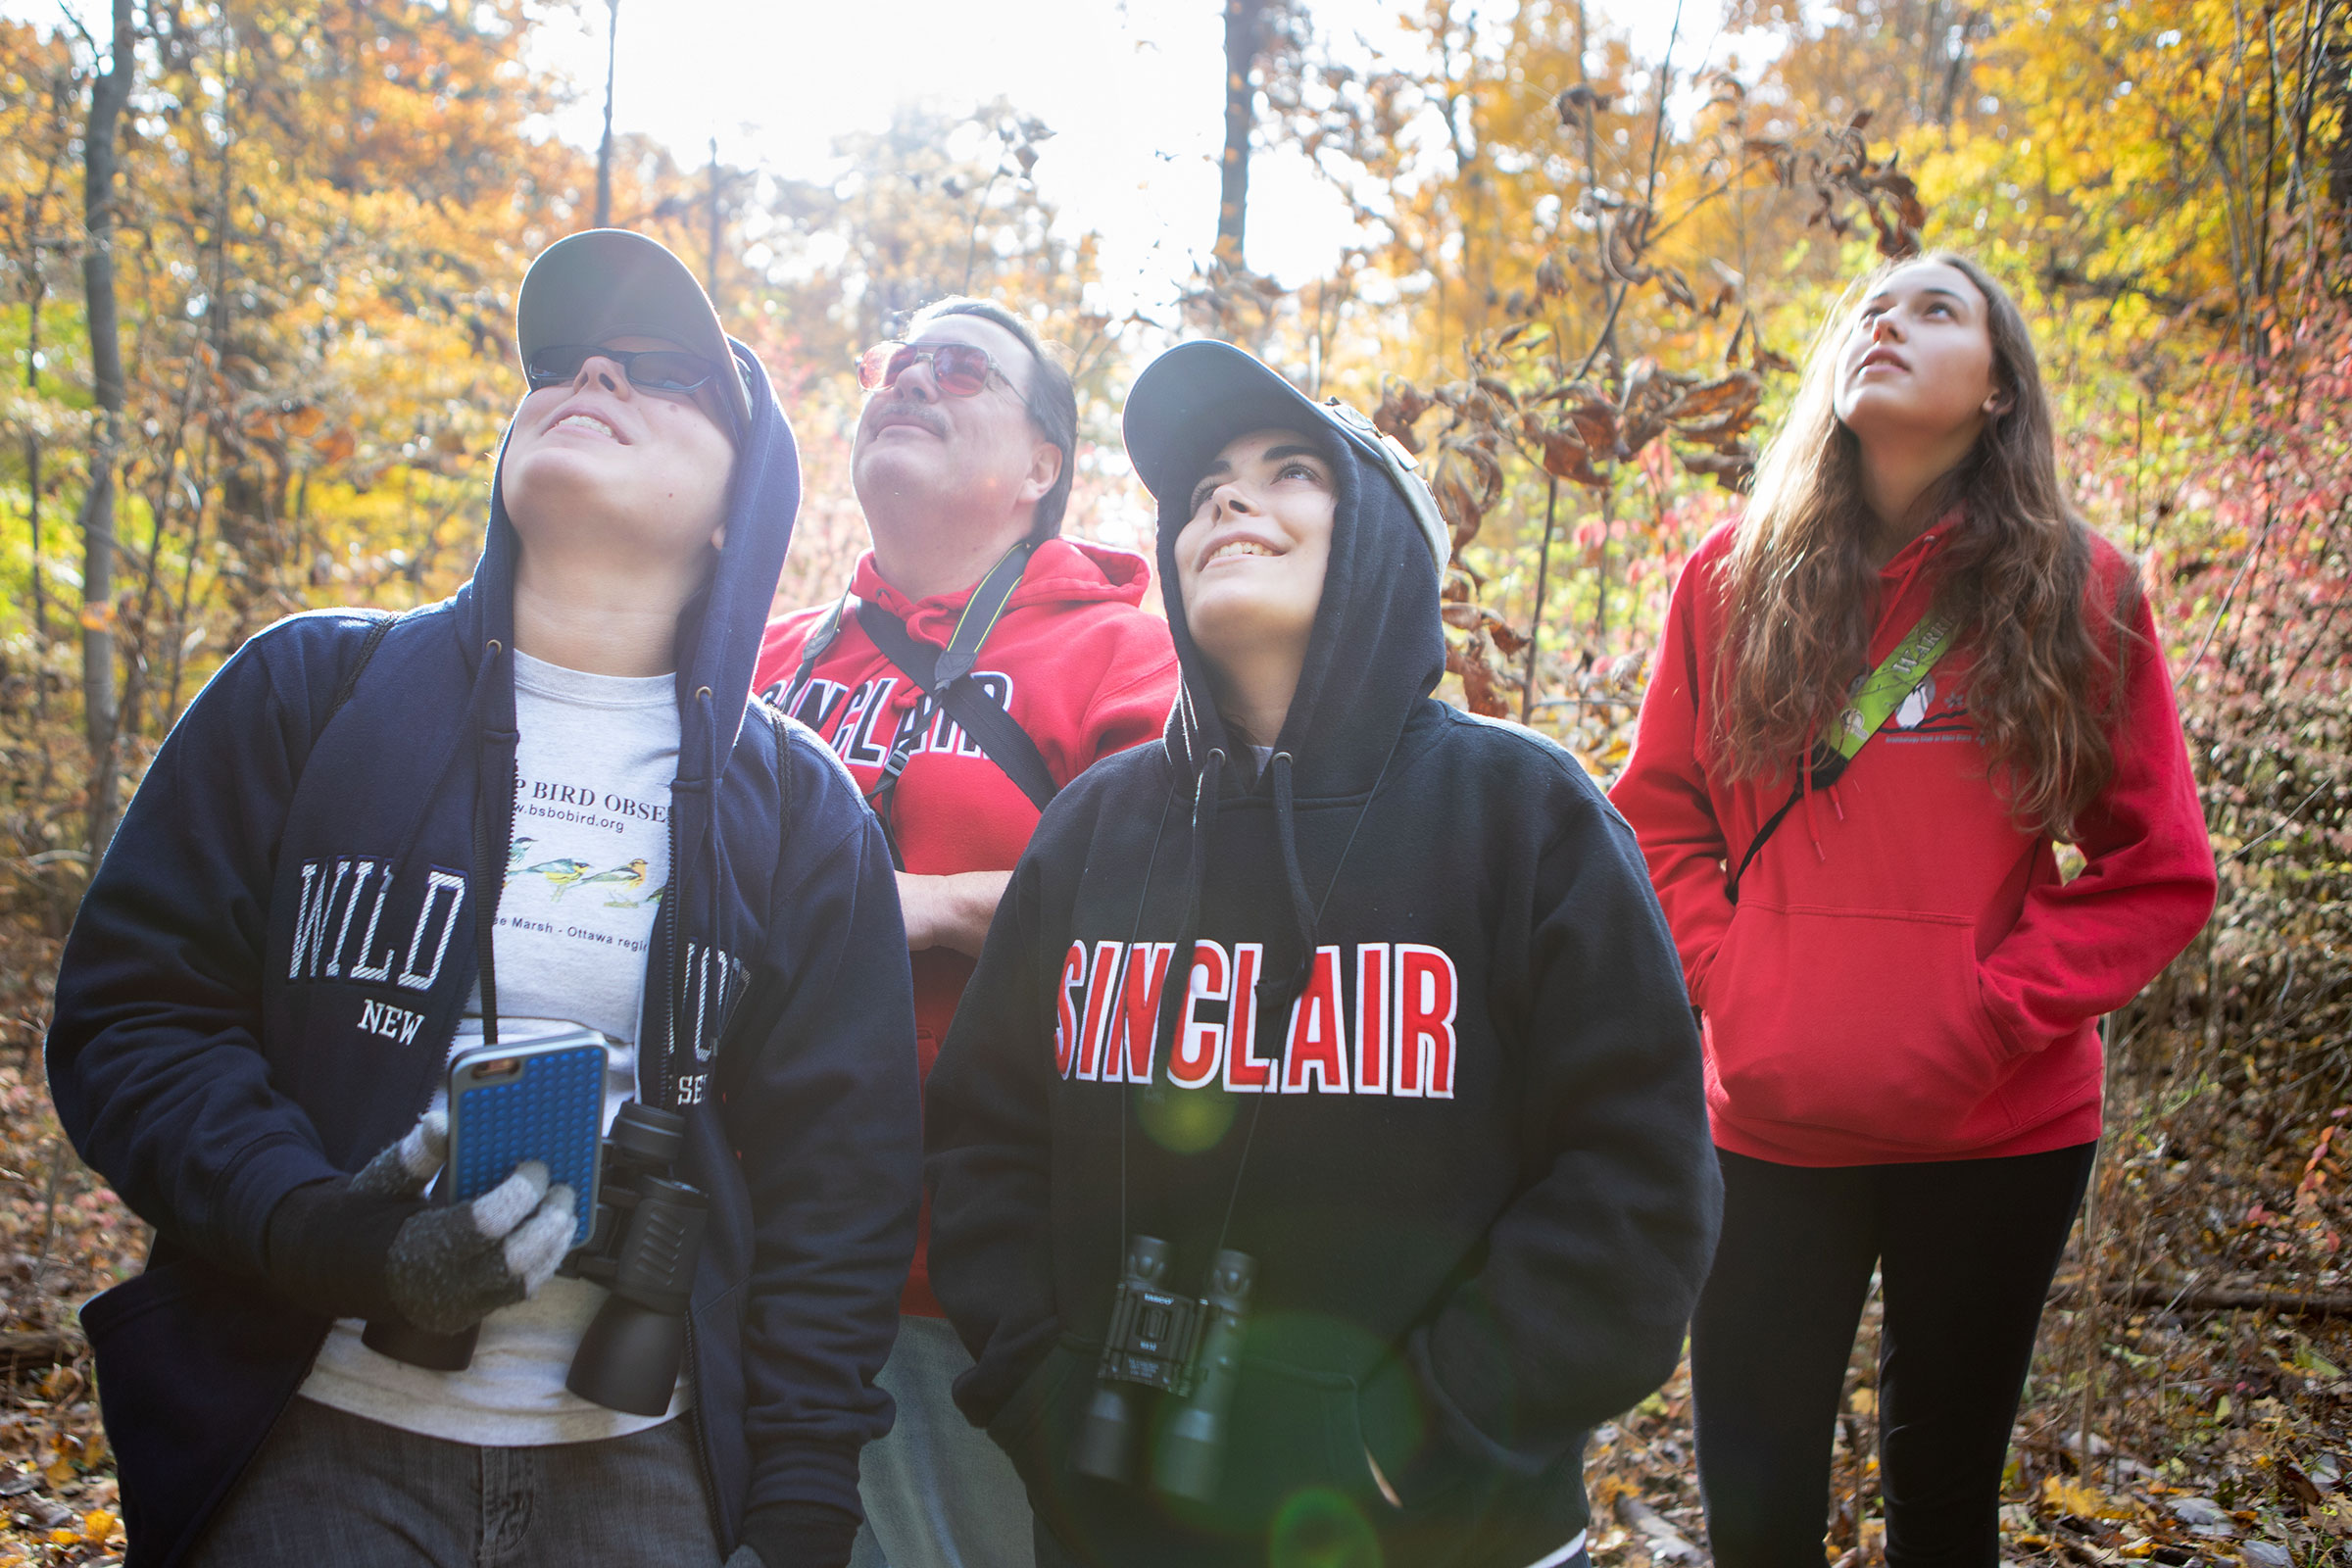 Young birders (from left) Christina Price and Danielle Price, along with their dad, join Cassidy Ficker on a field trip at the Blendon Woods in Columbus, Ohio. Camilla Cerea/Audubon